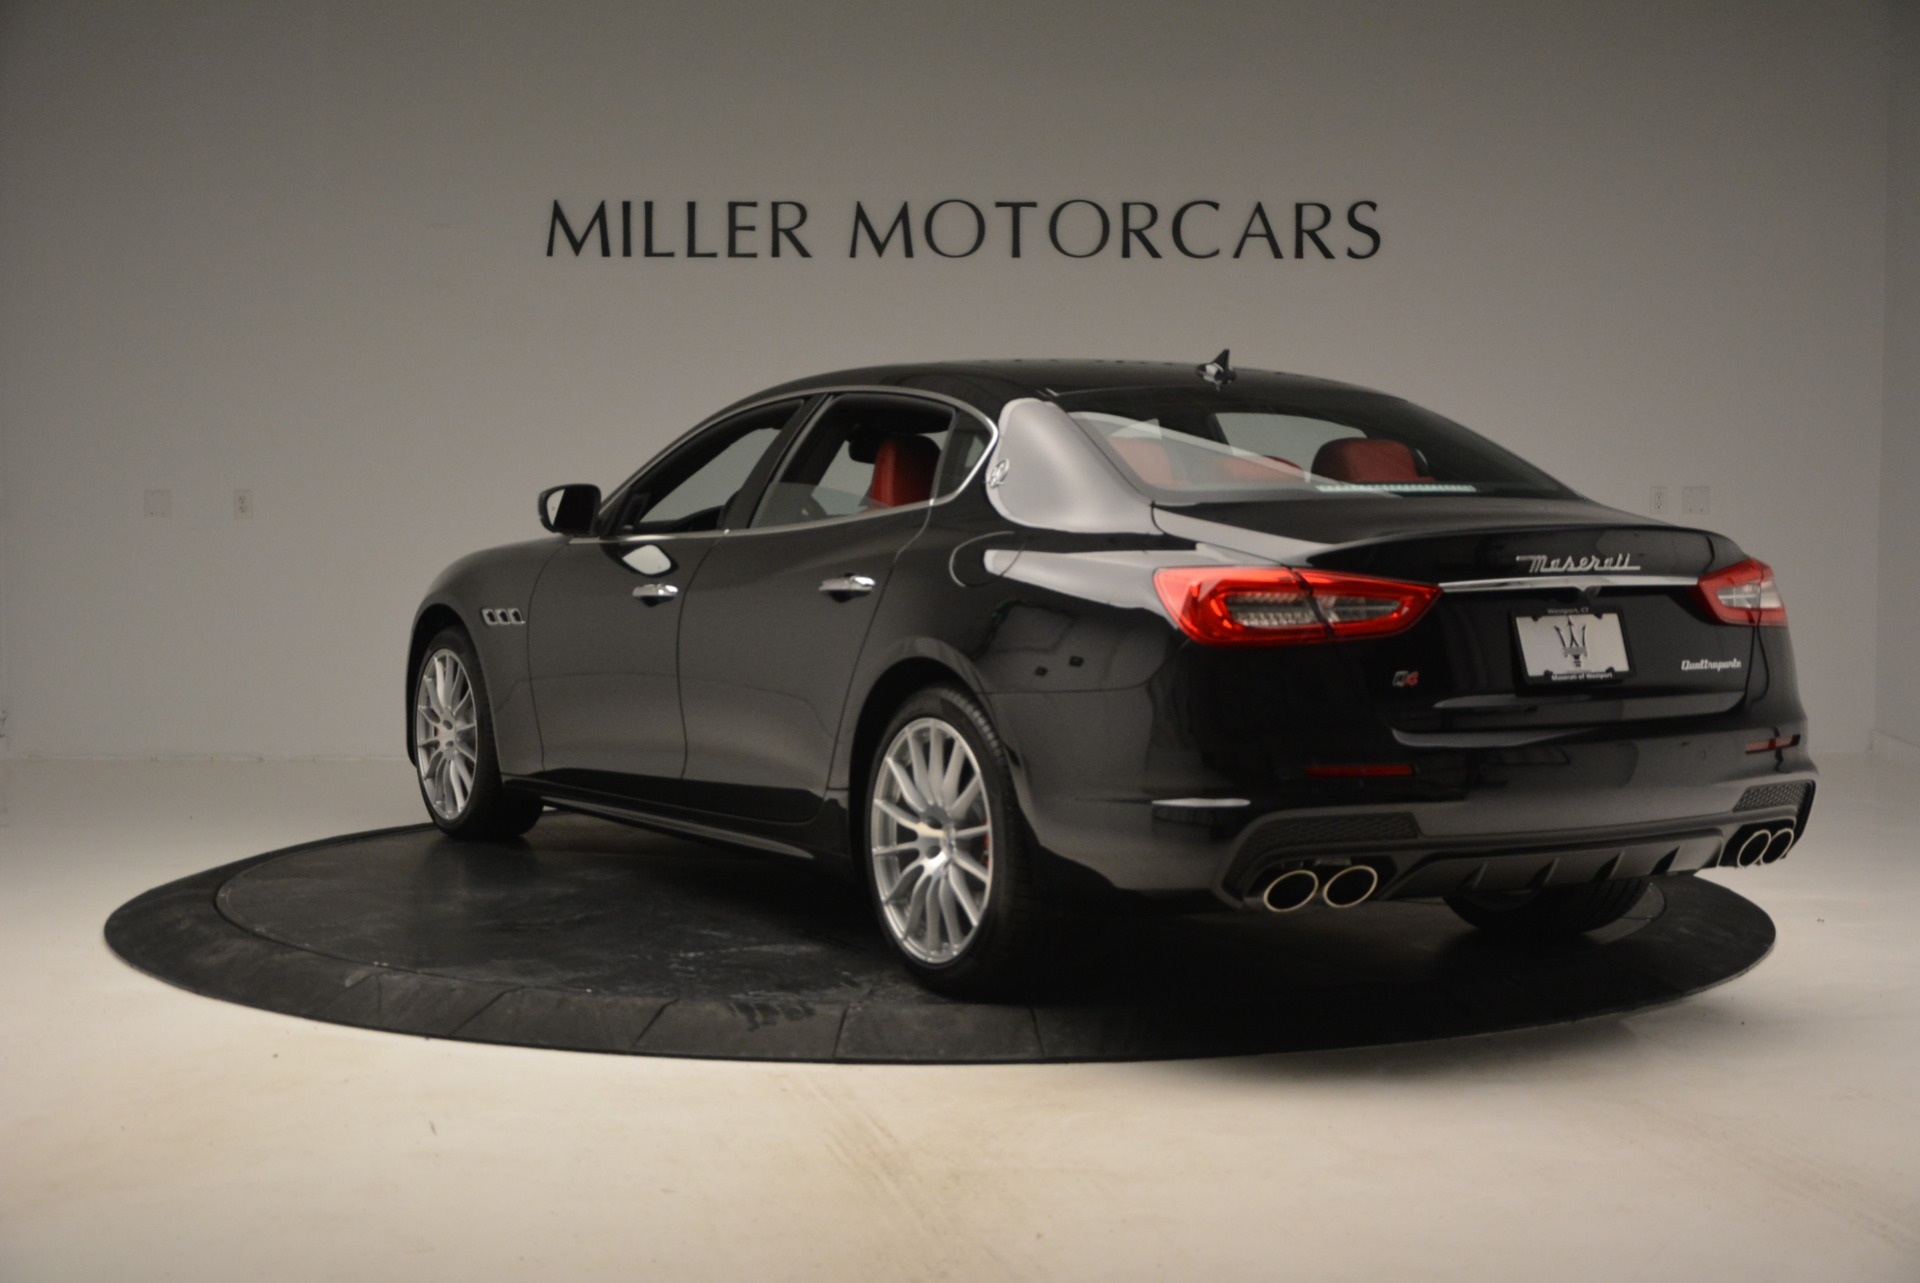 New 2017 Maserati Quattroporte S Q4 GranSport For Sale In Westport, CT 790_p5